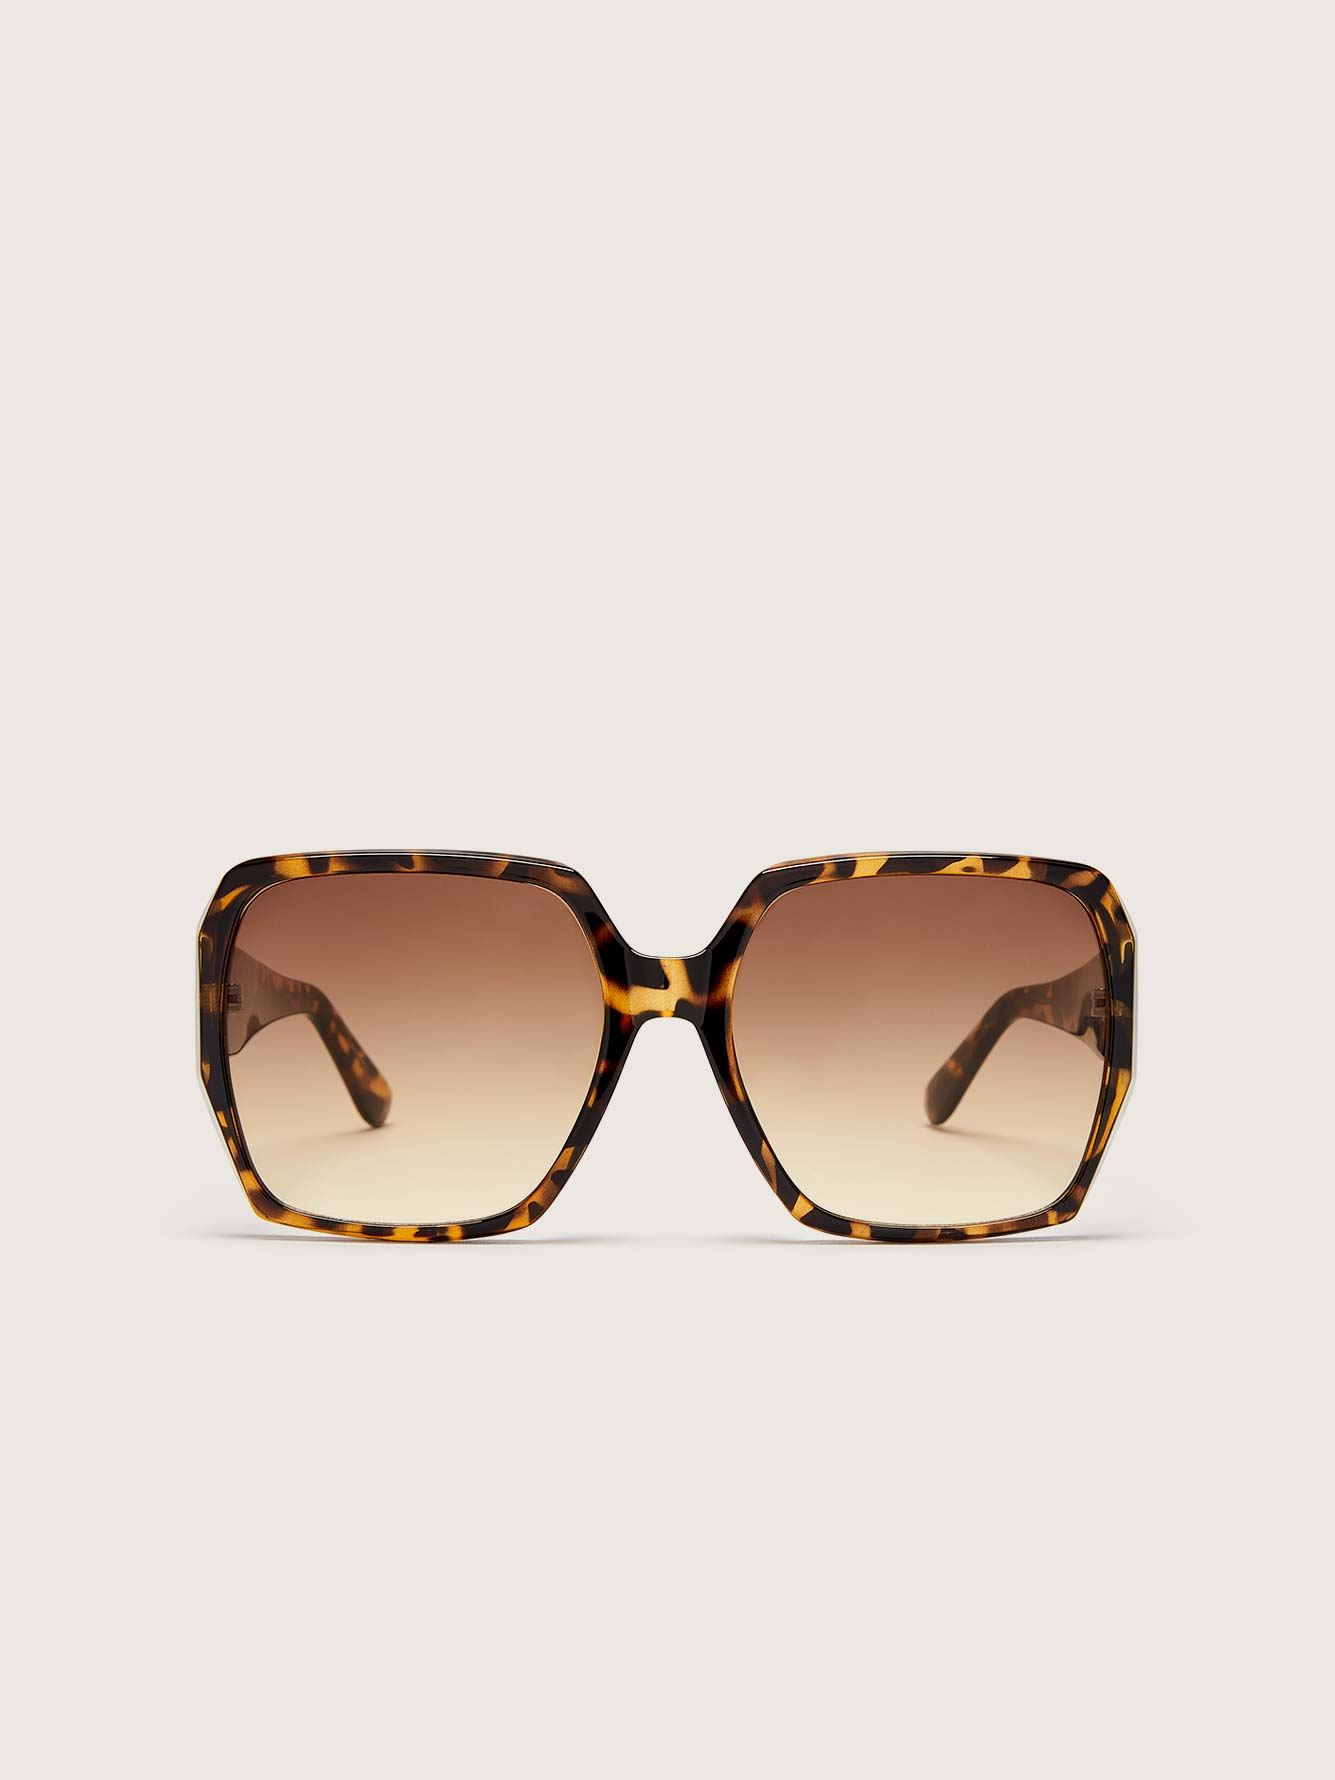 Oversized Tortoise Shell Sunglasses - Addition Elle